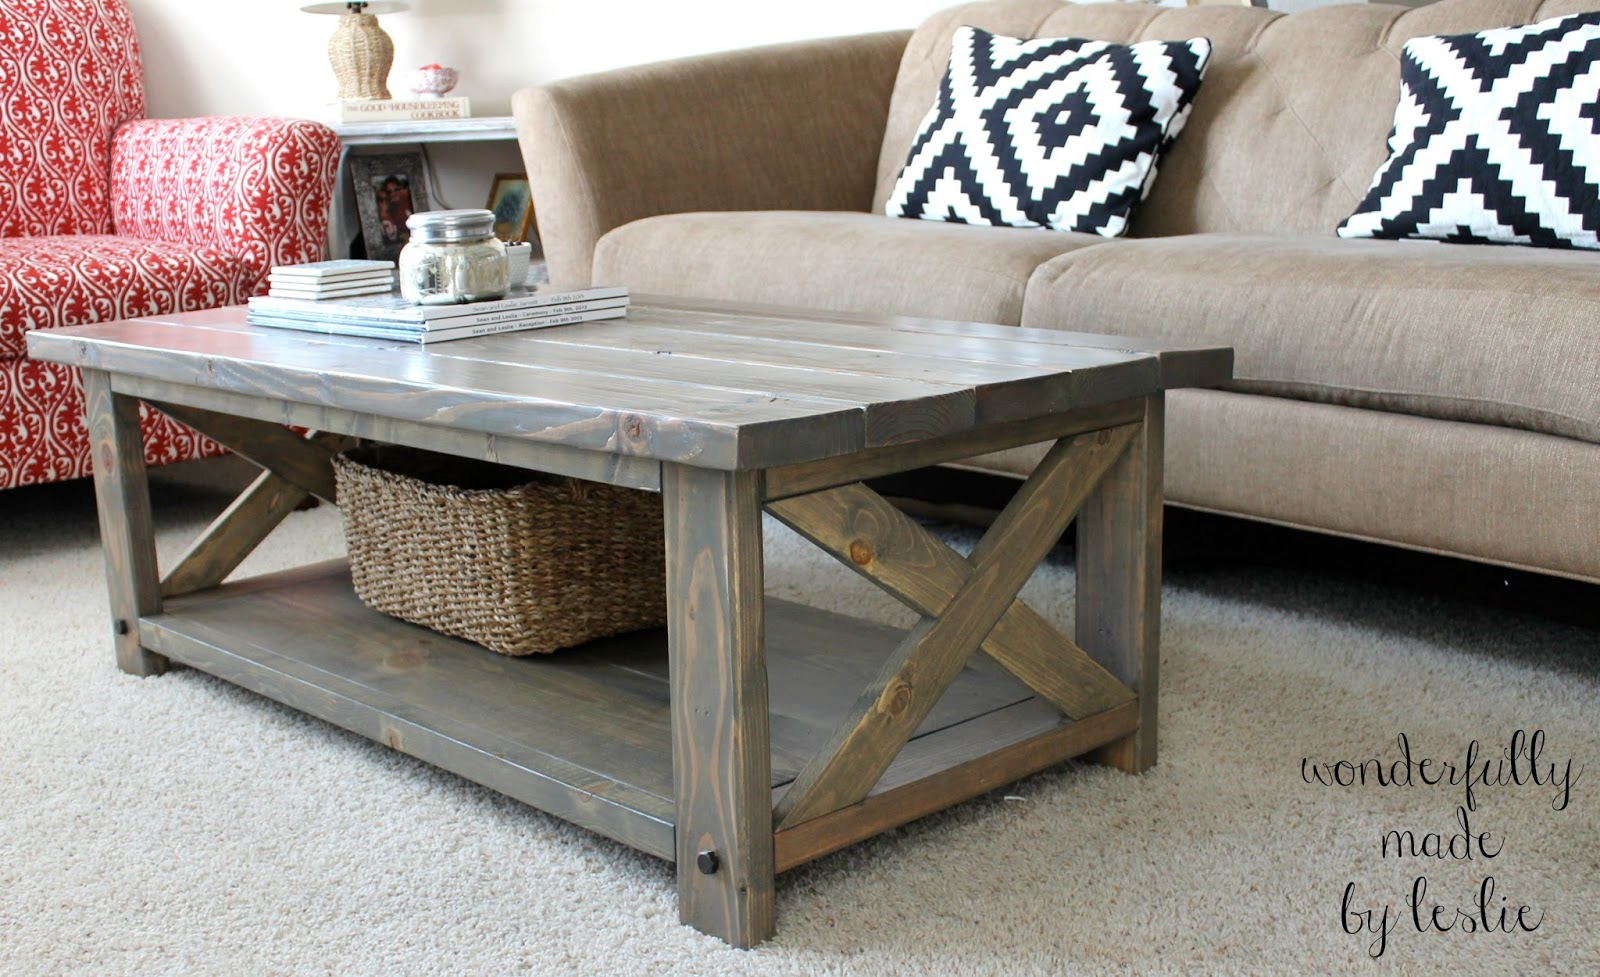 Wonderfully Made Finished Diy Coffee Table: homemade coffee table plans